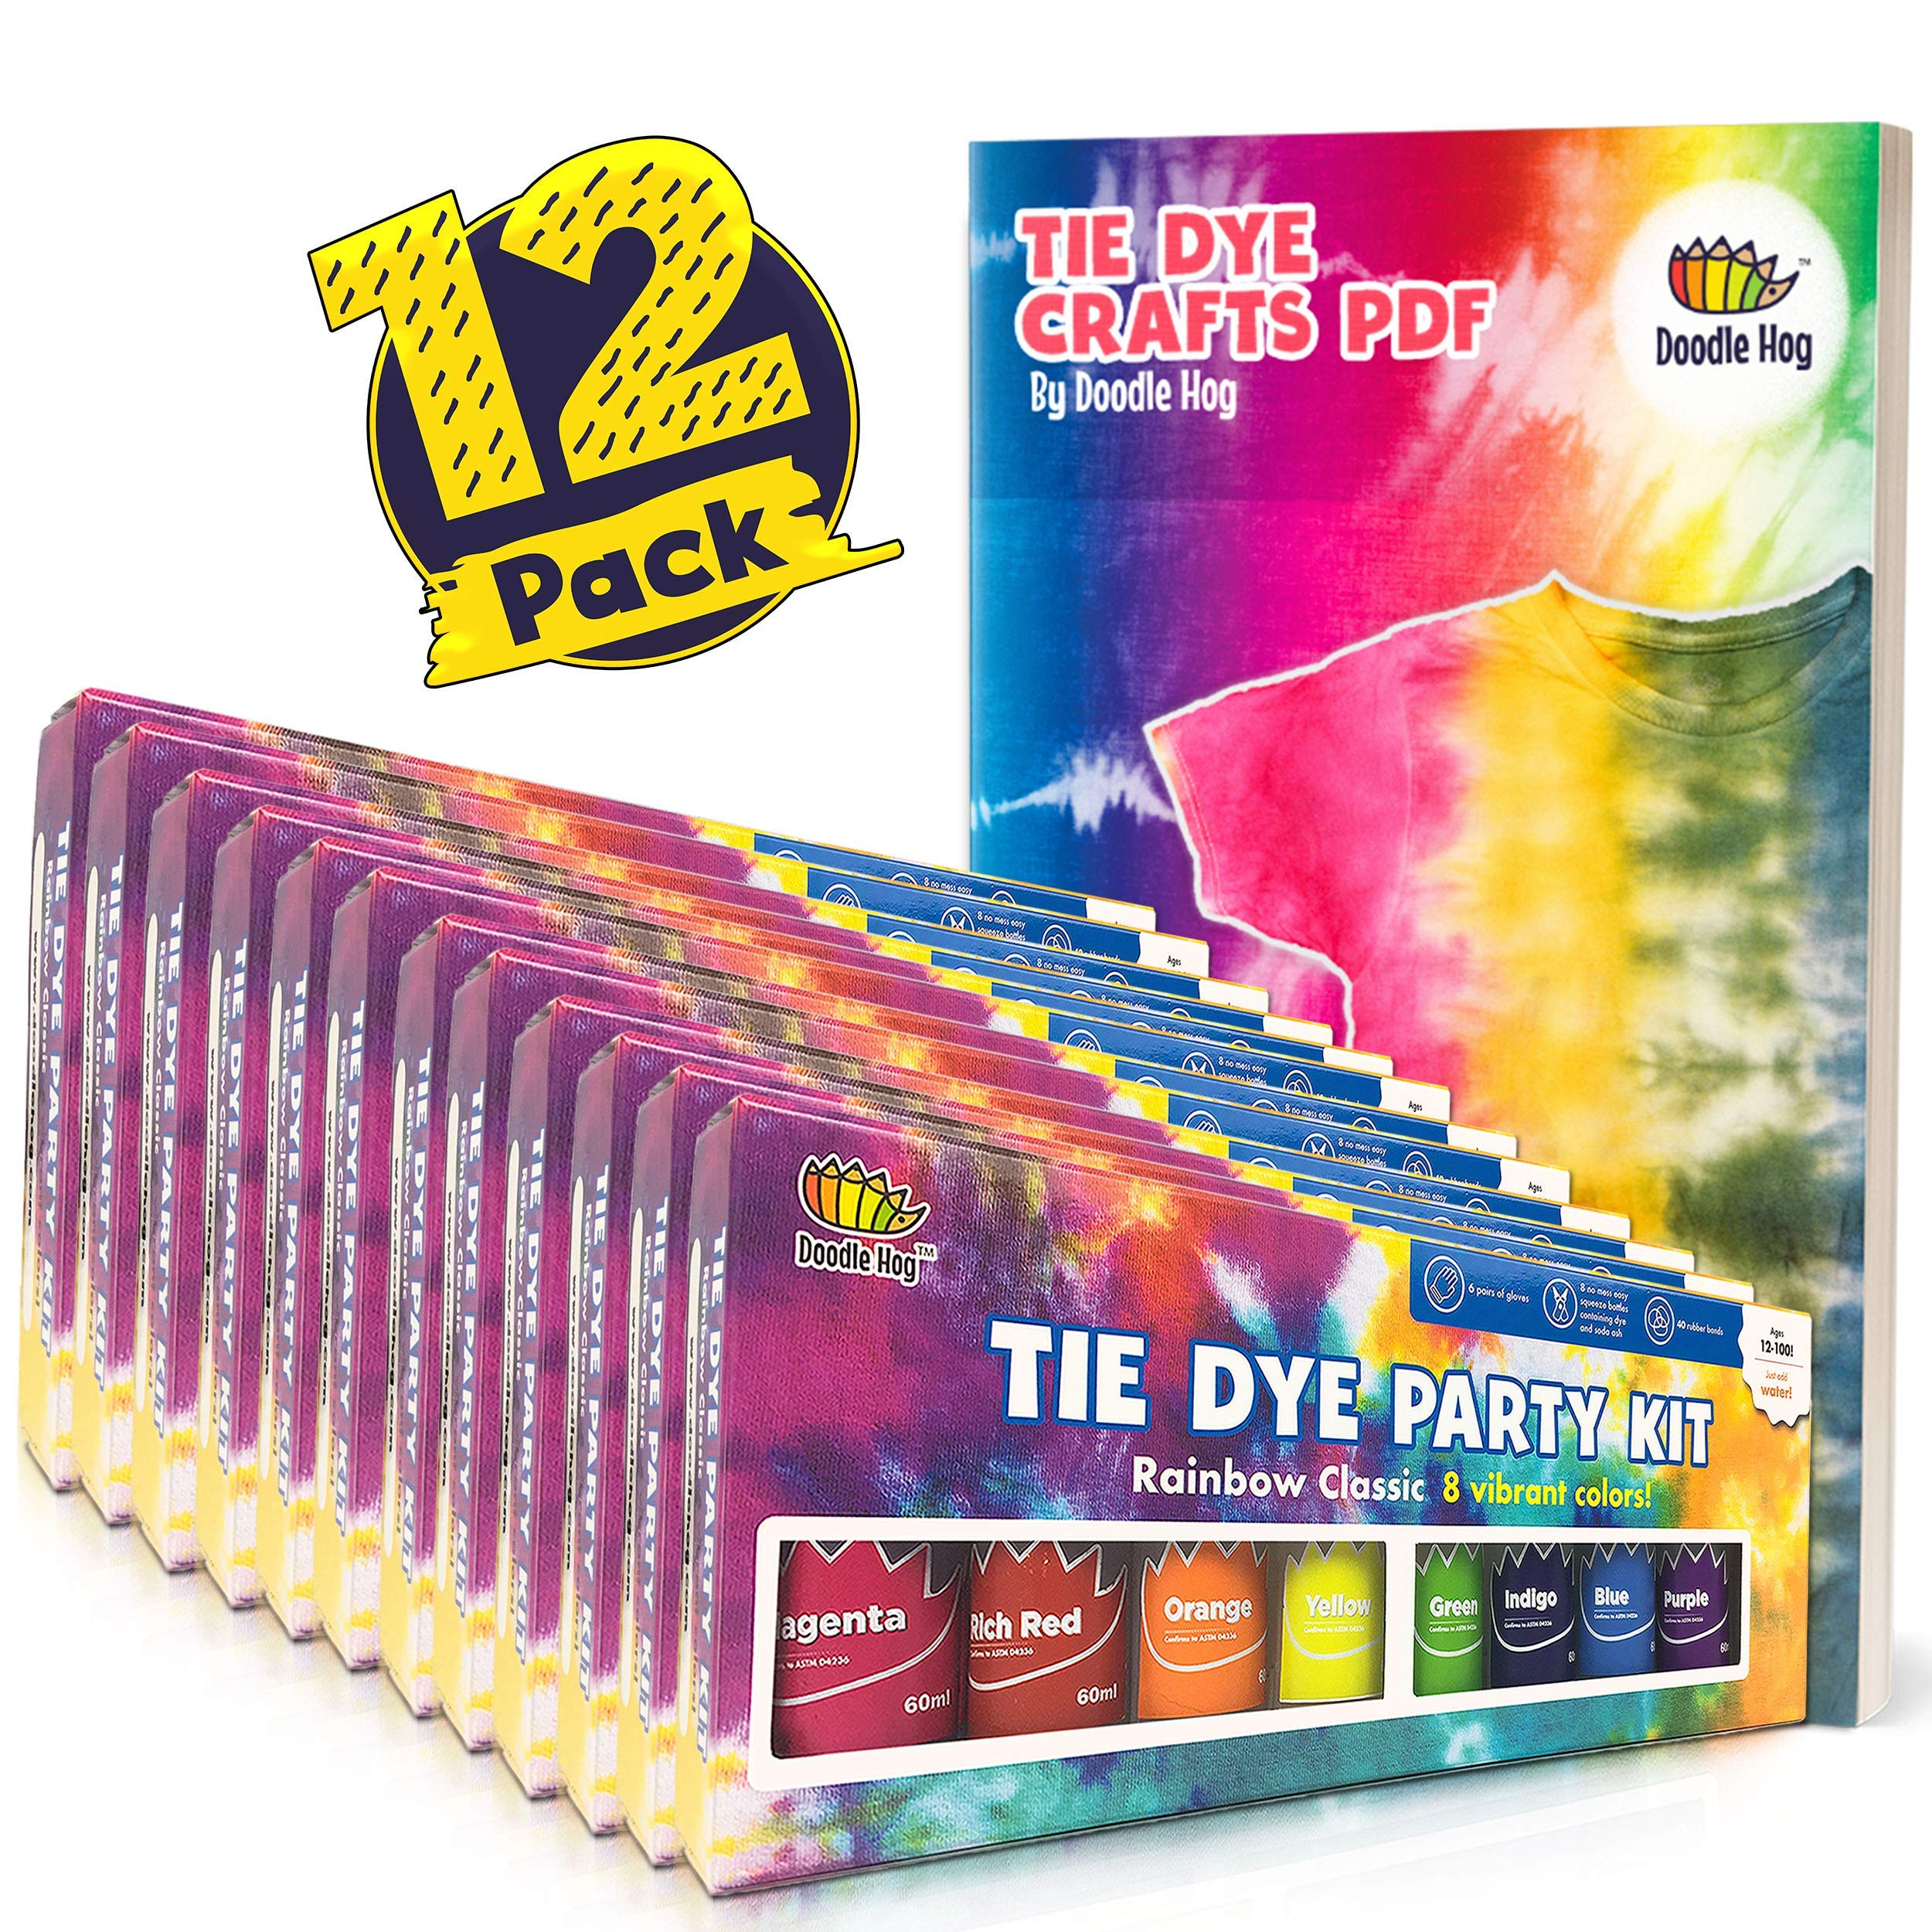 Easy Tie Dye Party Kit for Kids Adults, and Groups. Create Vibrant Designs with Non-Toxic Dye. 12 Packs Includes 96 Bottles of Tie Dye Ink (8 Colors Per Pack)! Beginner-Friendly: Just Add Water!